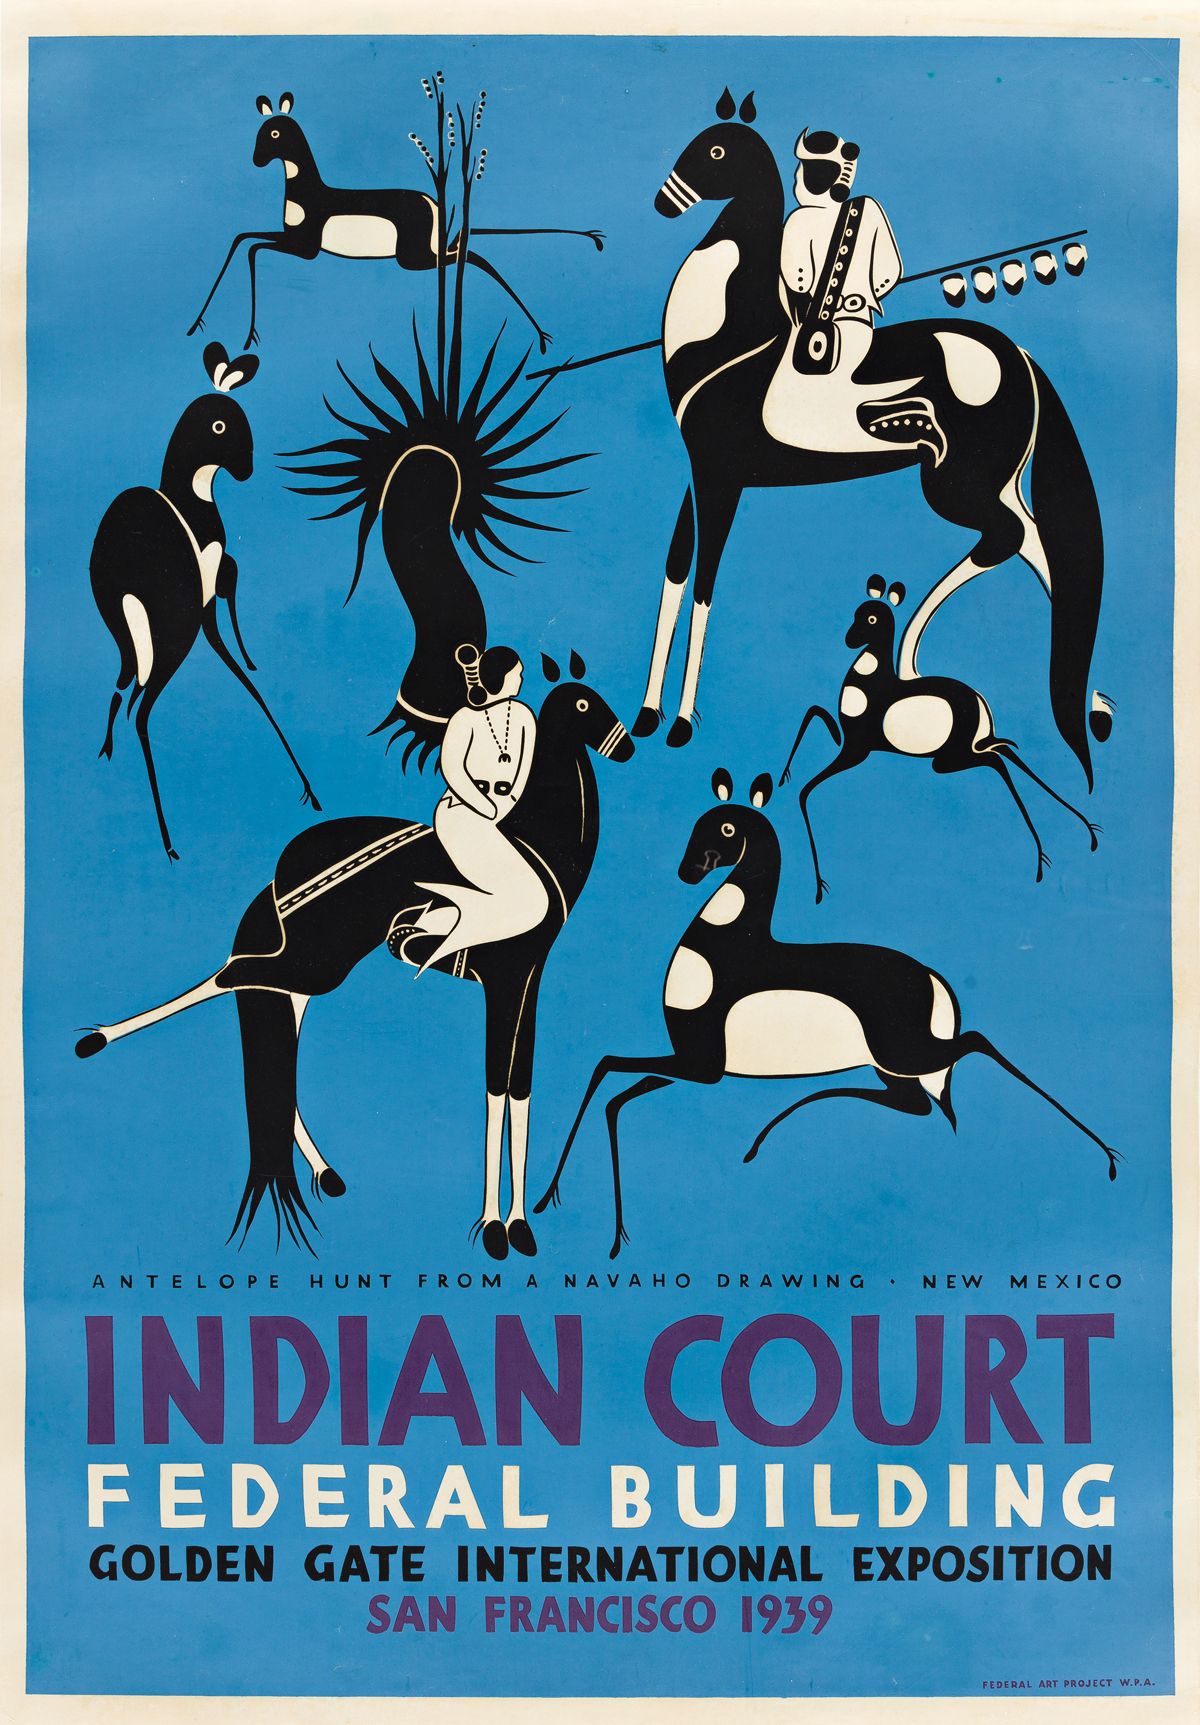 LOUIS B. SIEGRIEST (1899-1989) Indian Court Federal Building / Antelope Hunt.